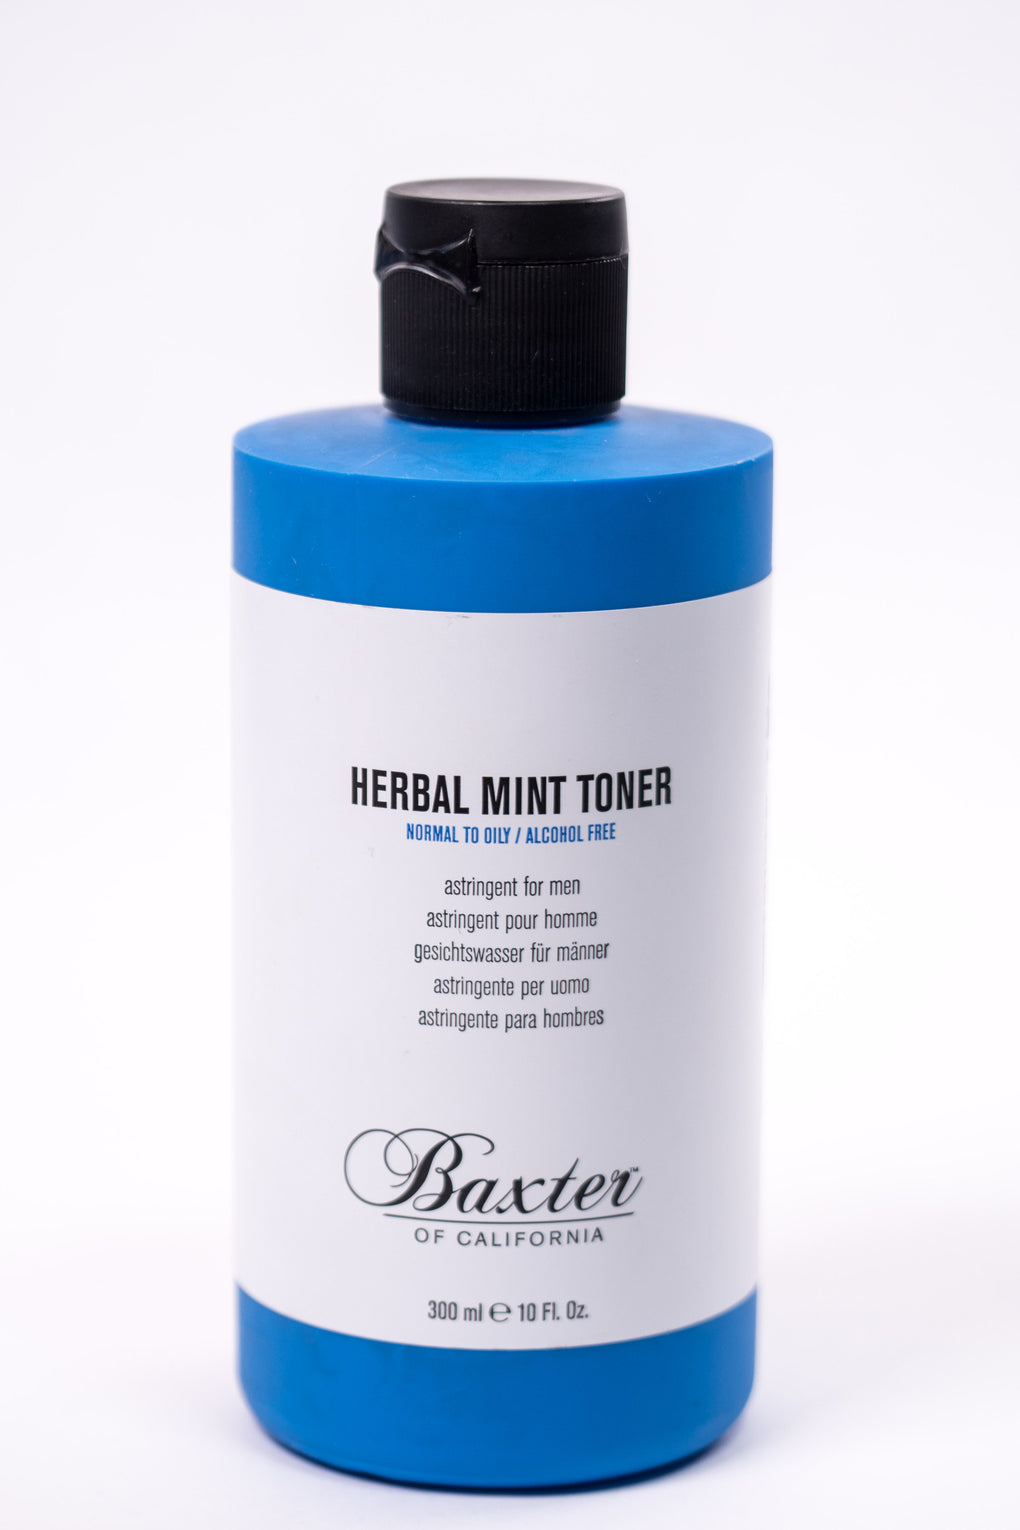 Baxter Herbal Mint Toner at Consigliere